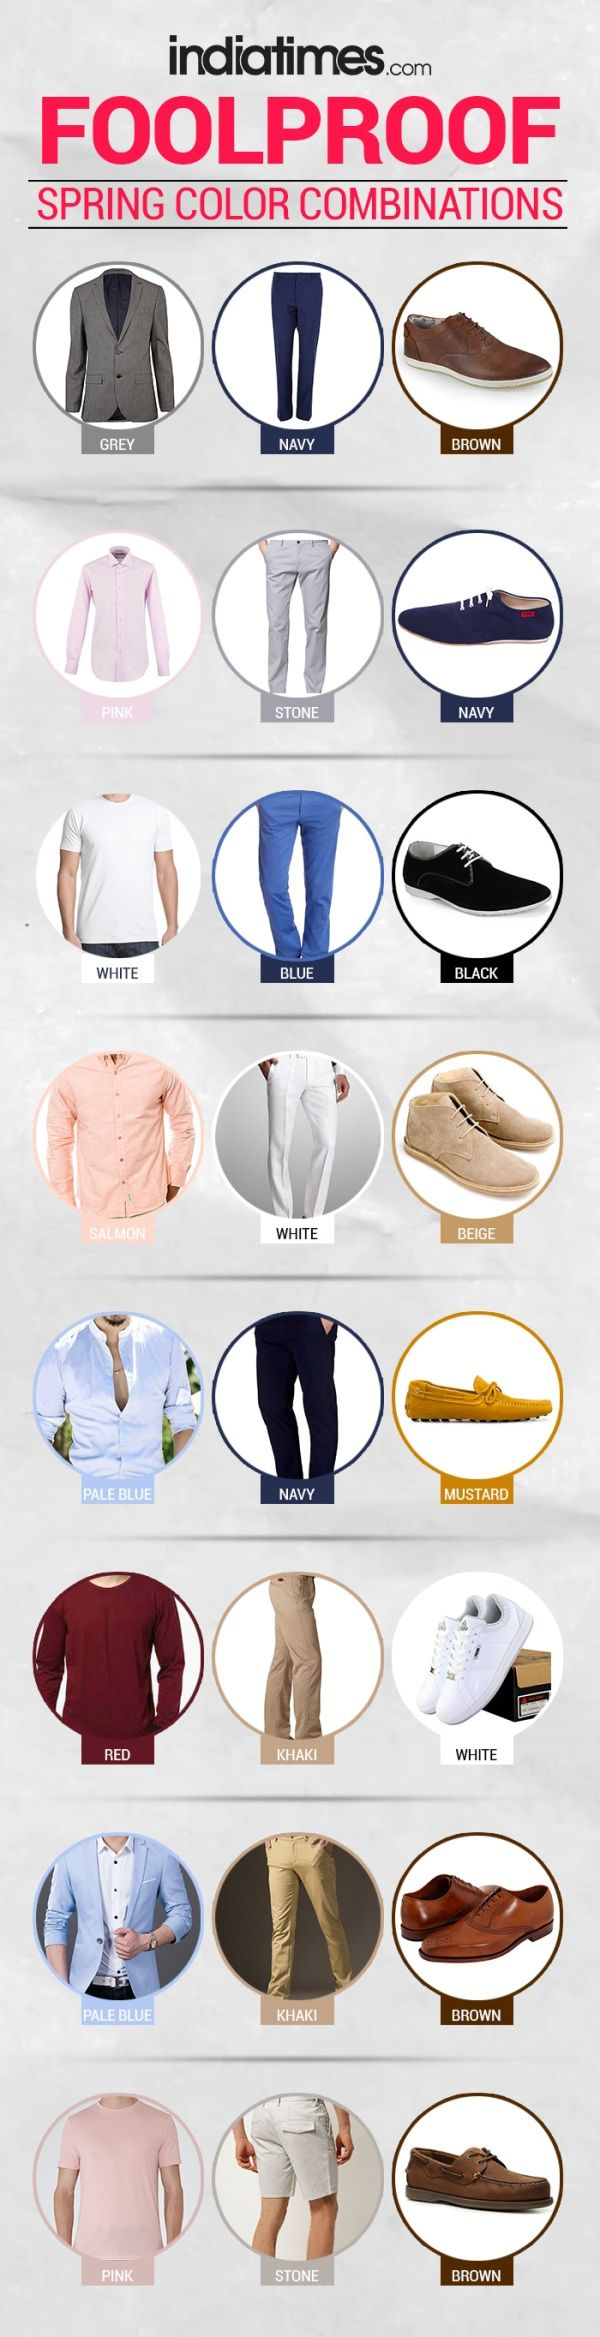 Men's fashion tip